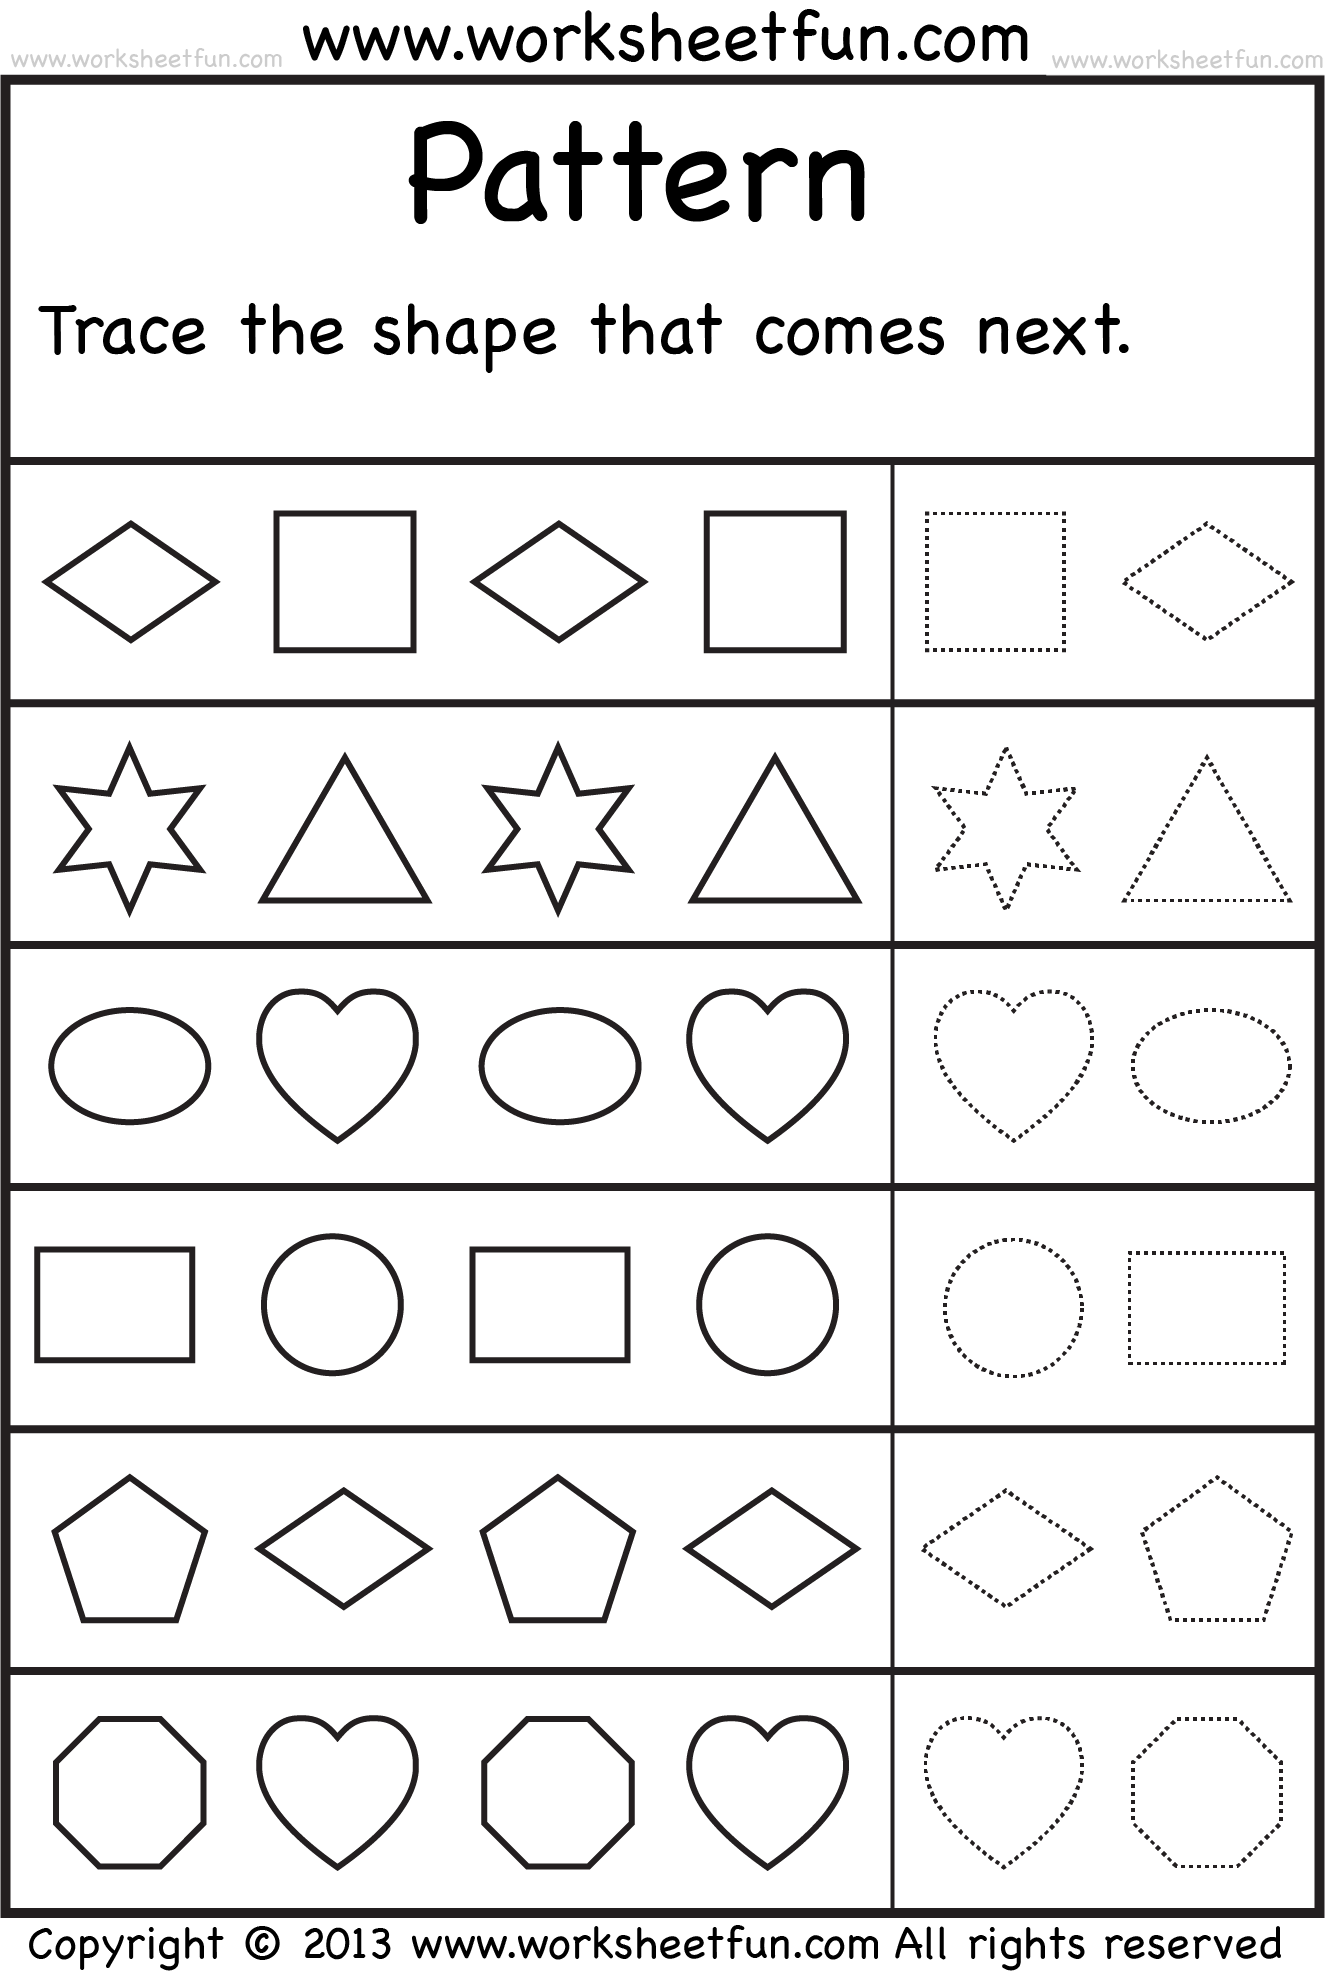 Pattern Printable Images Gallery Category Page 3